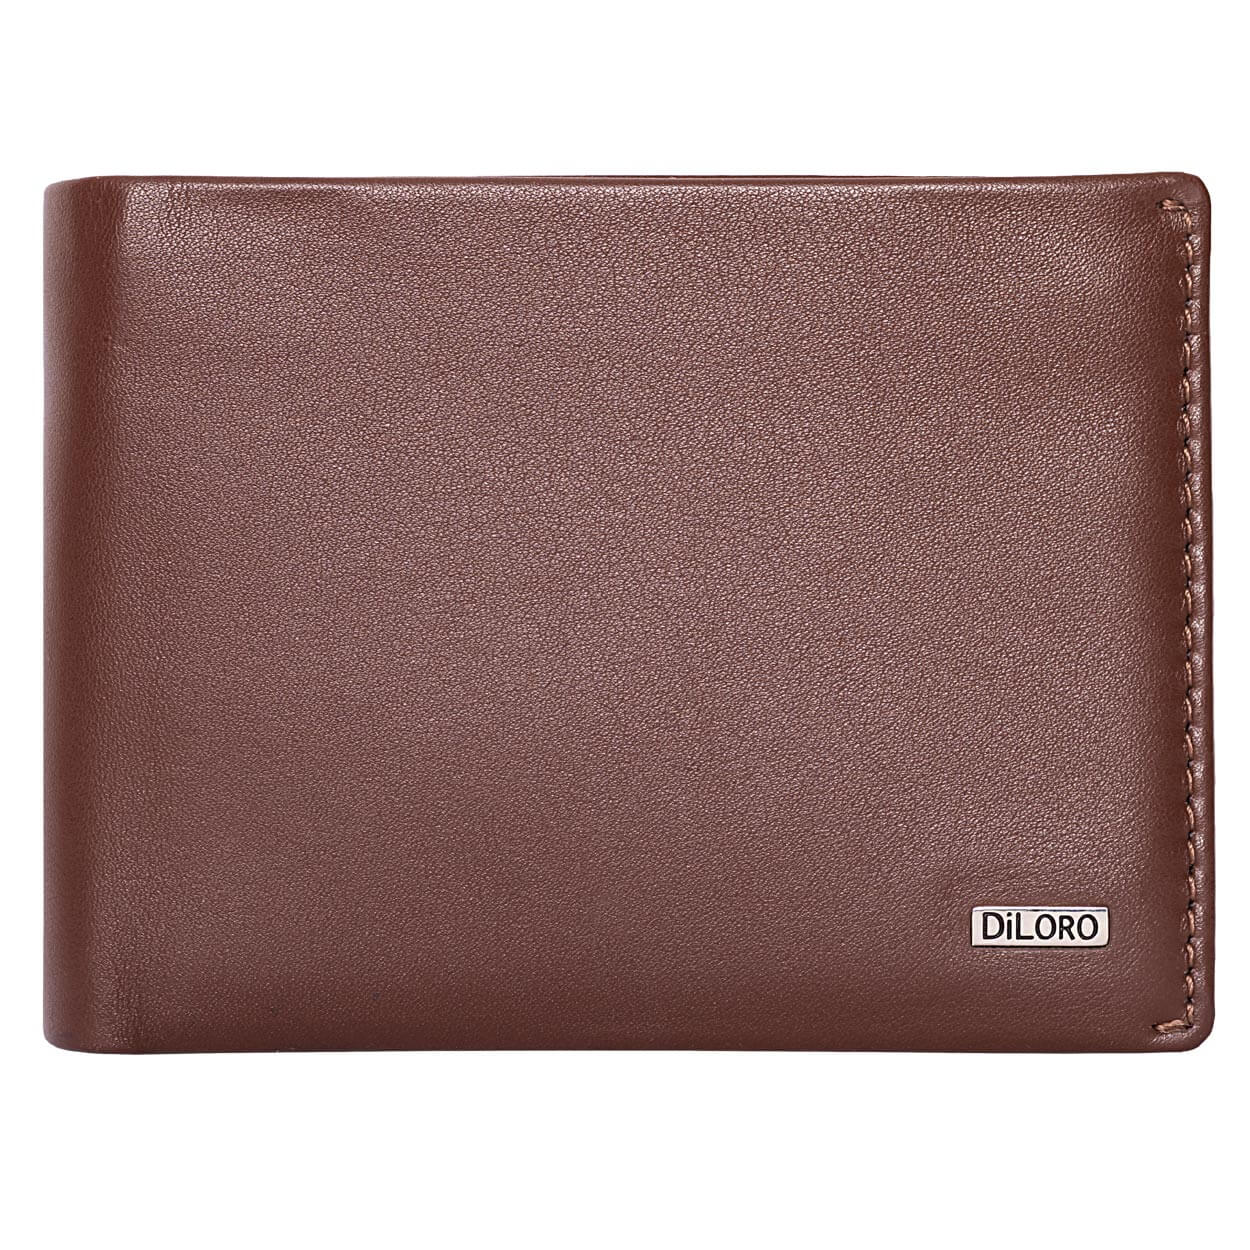 Compact Mens Leather Wallet with Coin Compartment in Hickory Brown - Front View